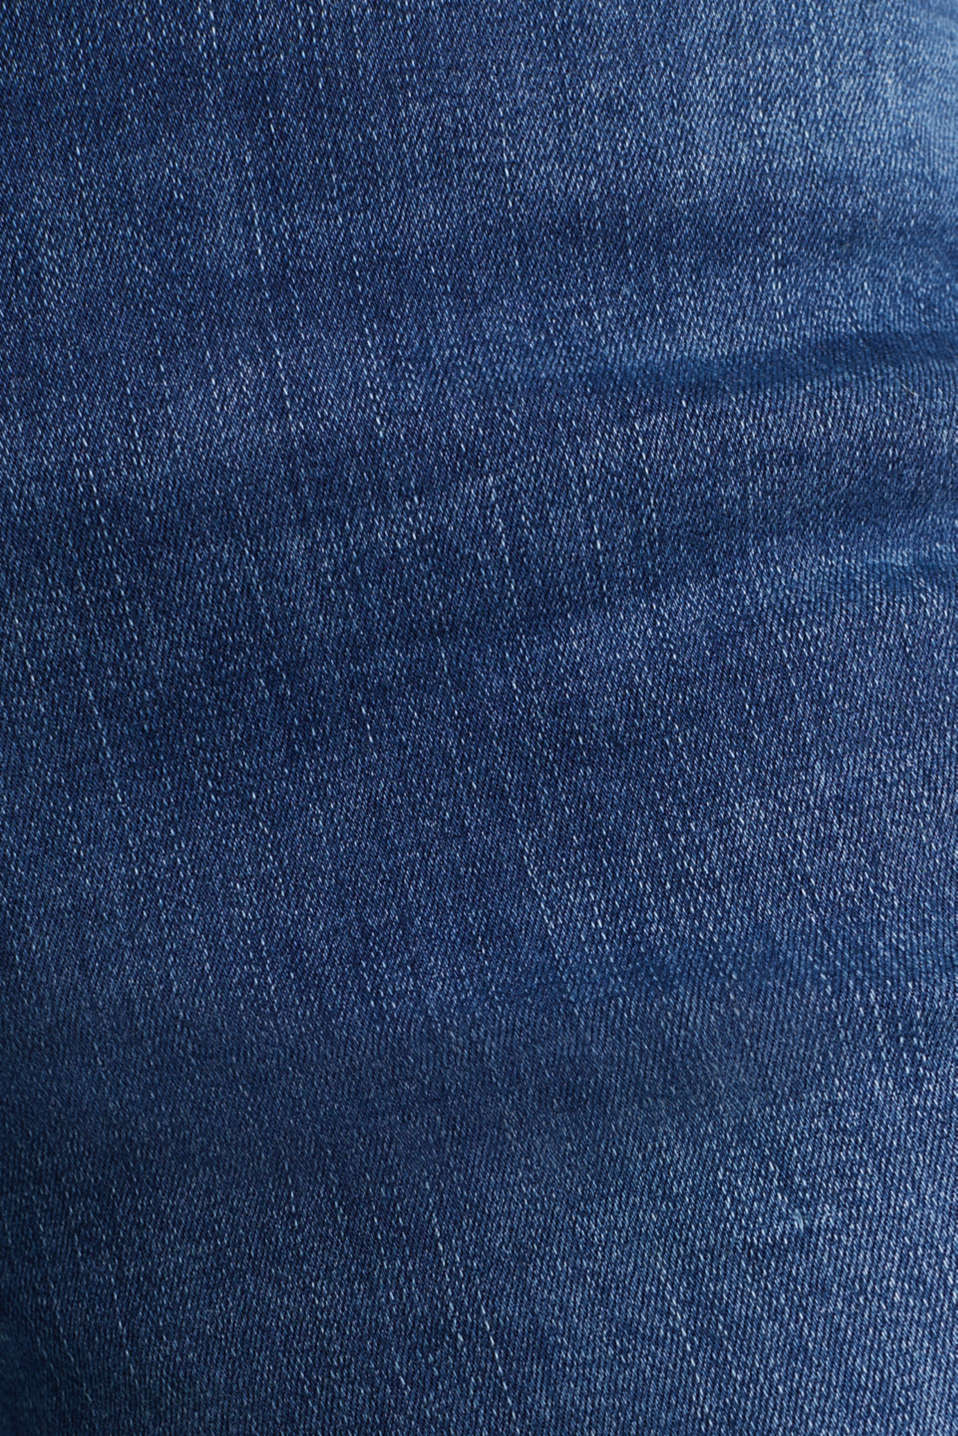 REPREVE stretch jeans with recycled polyester, BLUE MEDIUM WASH, detail image number 3